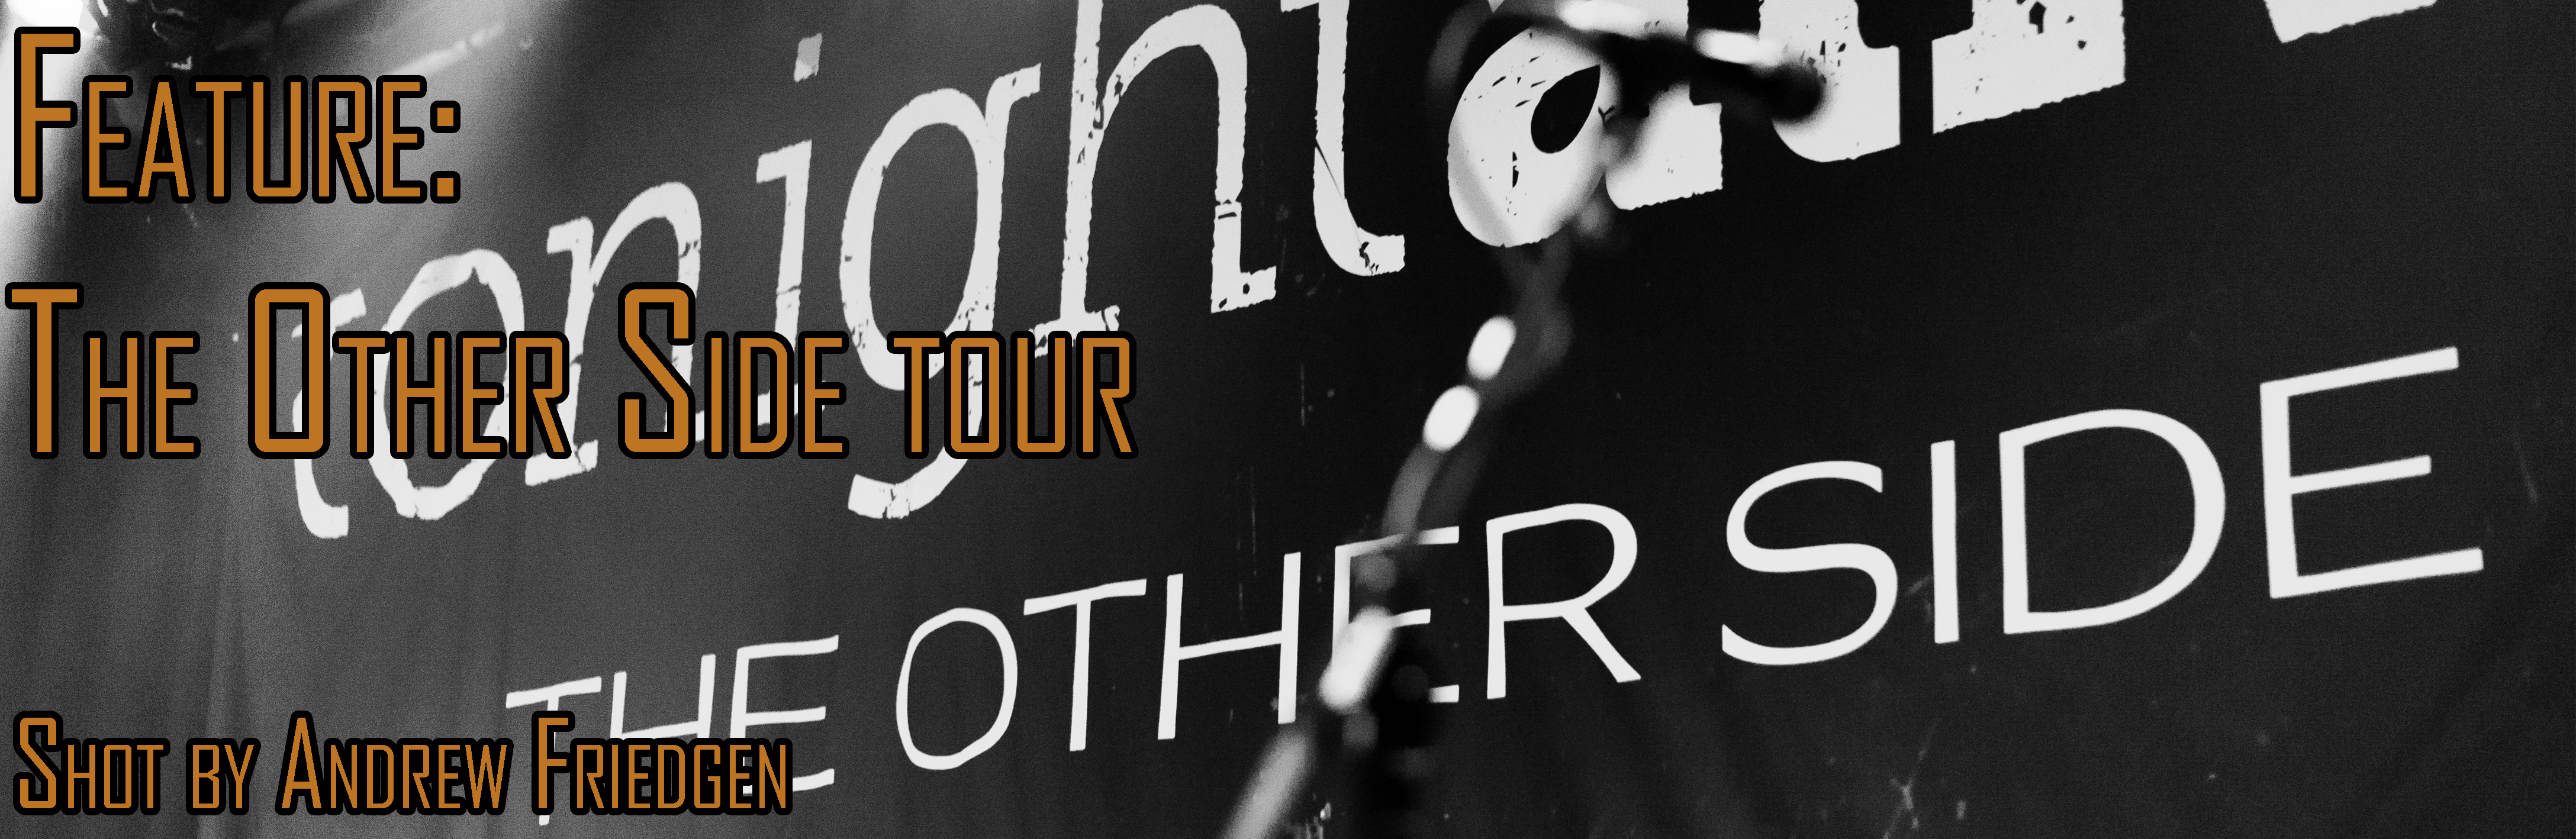 banner jpgTonight Alive The Other Side Tour